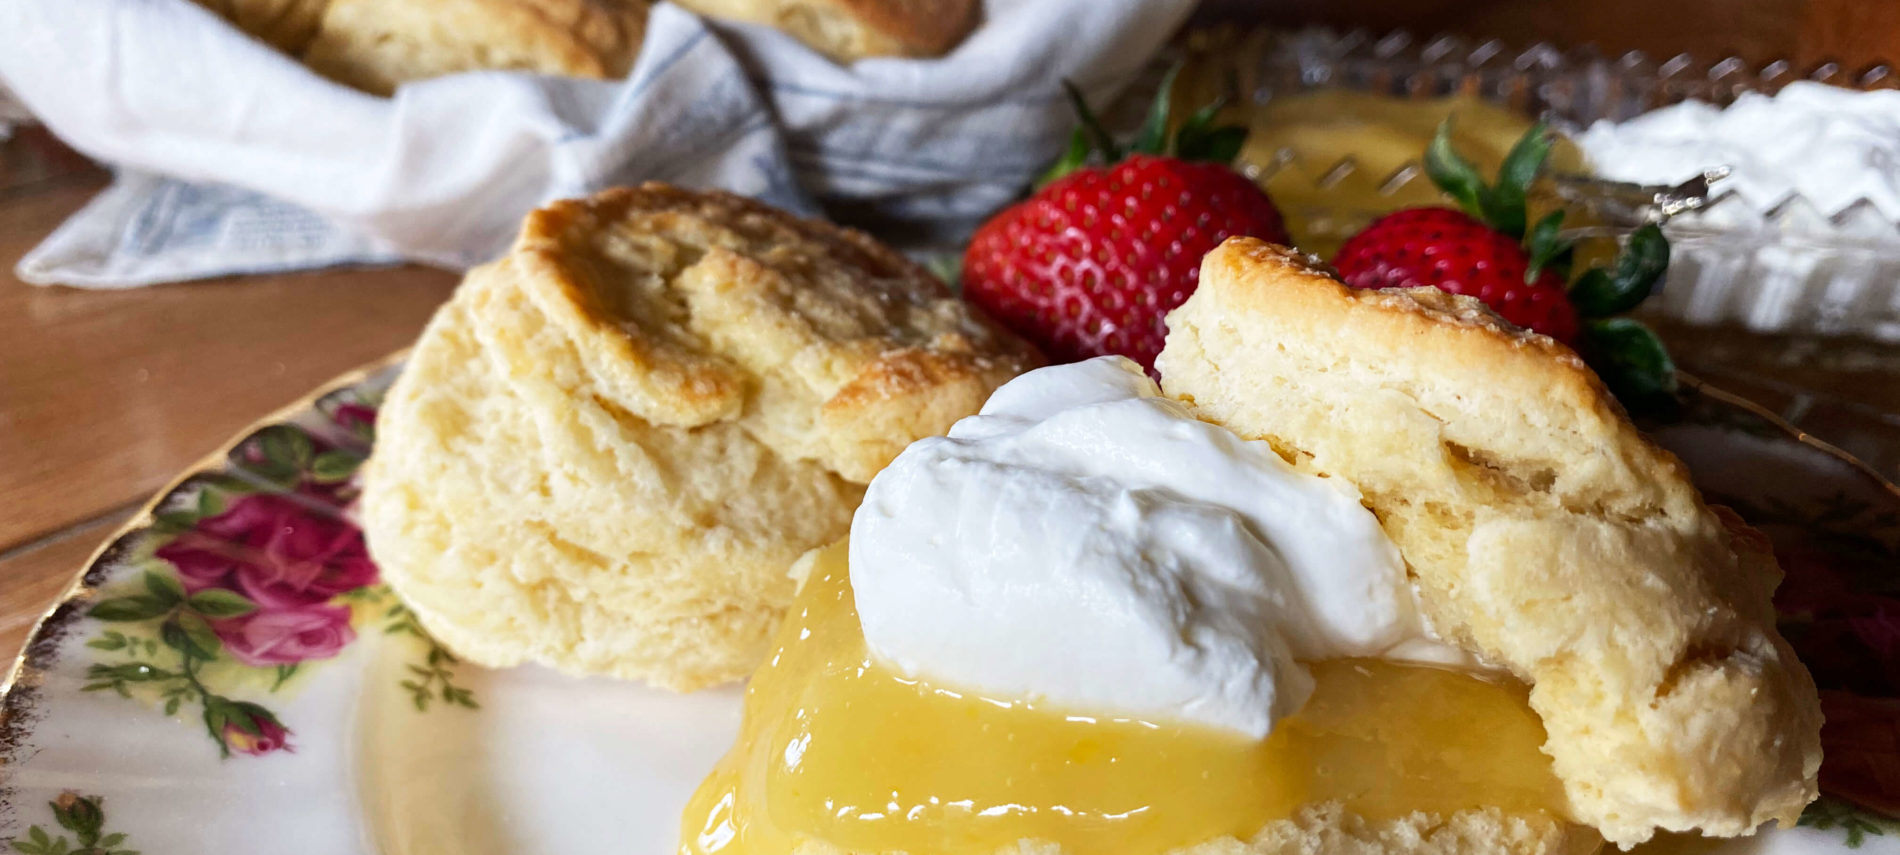 Flaky golden scones with lemon curdc devonshire cream, and fresh strawberries